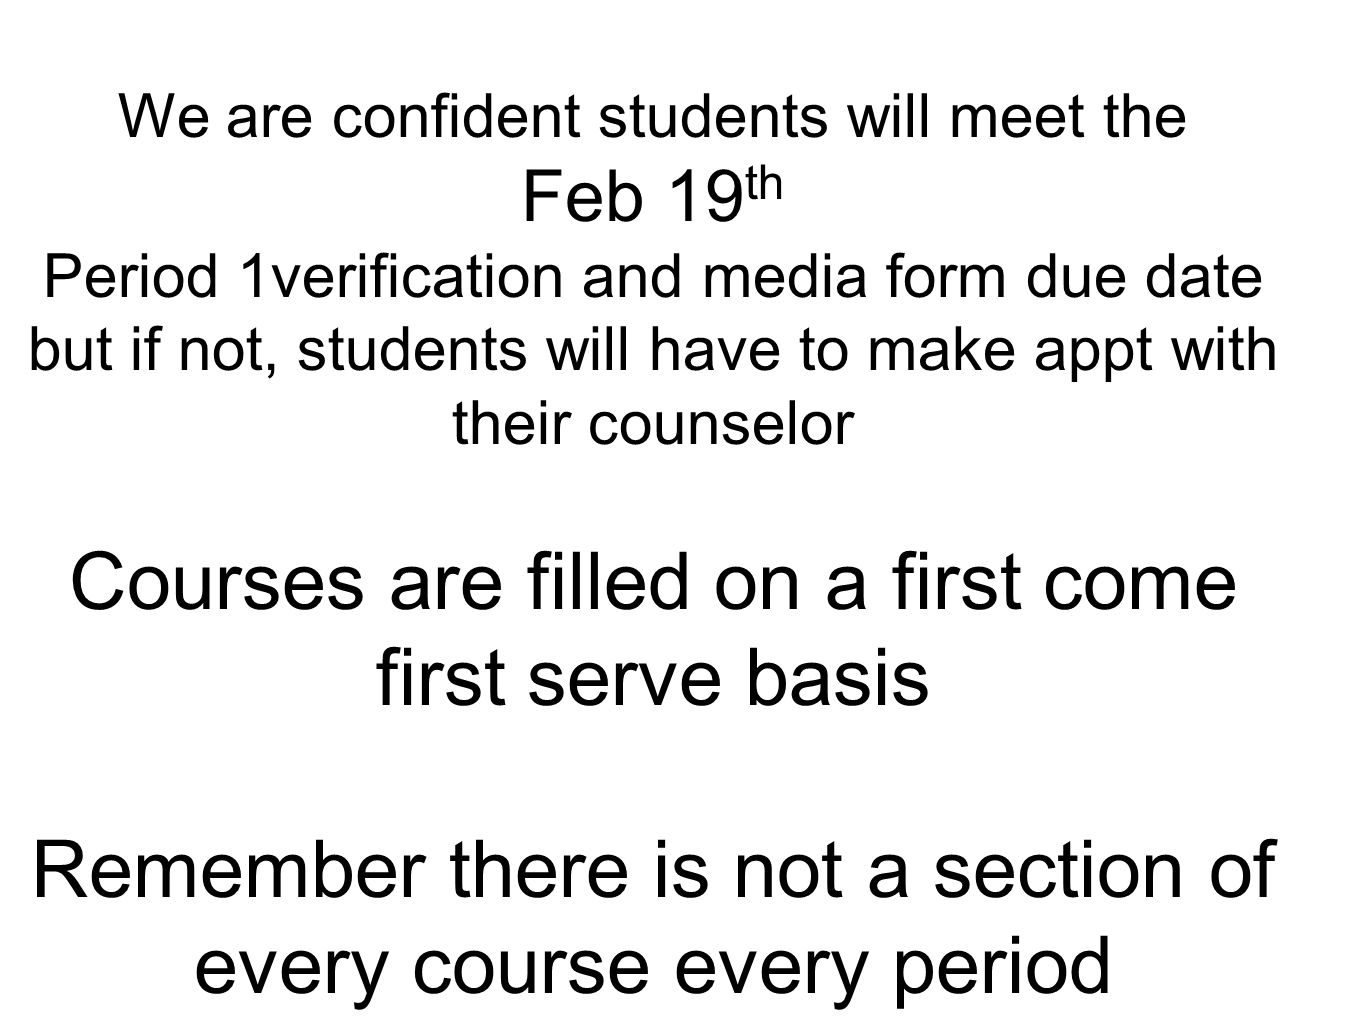 We are confident students will meet the Feb 19 th Period 1verification and media form due date but if not, students will have to make appt with their counselor Courses are filled on a first come first serve basis Remember there is not a section of every course every period